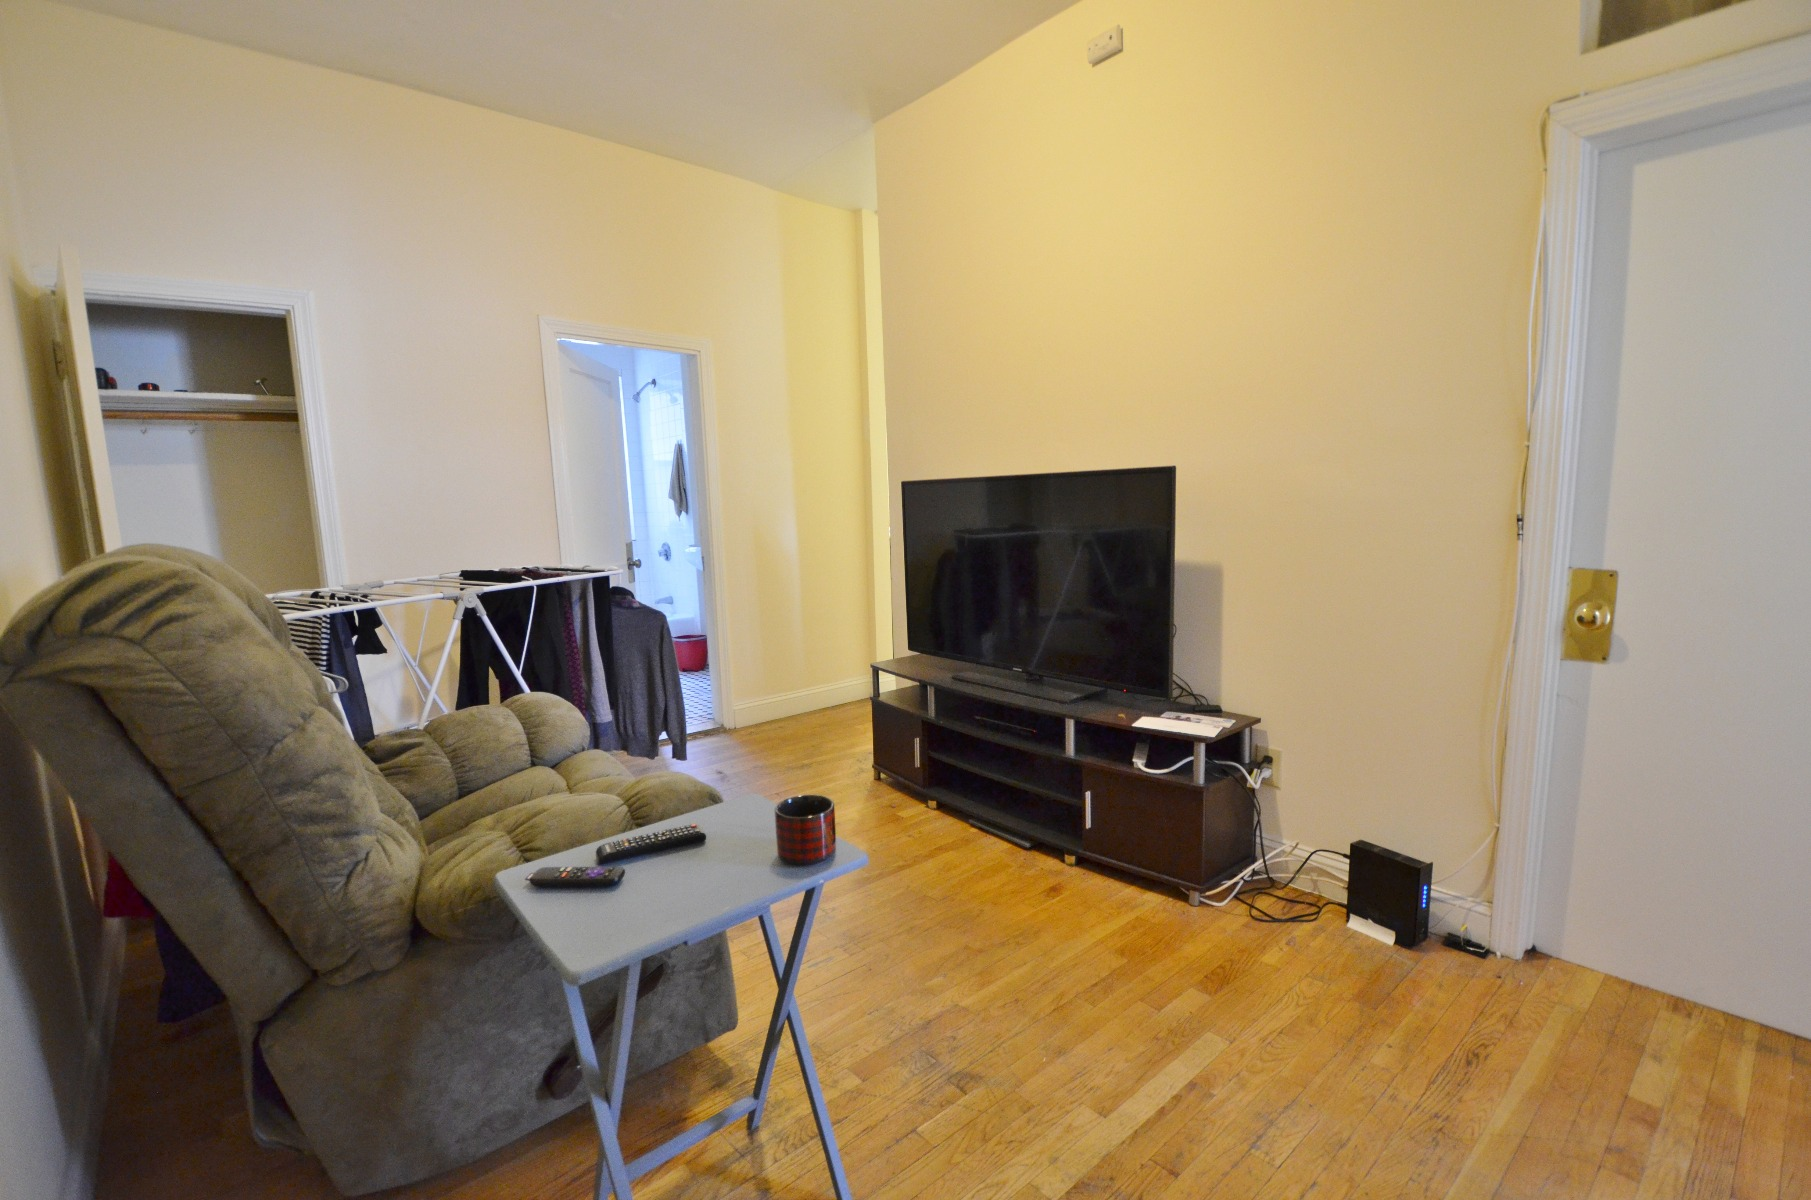 Avail 9/1 - Bright, Roomy, Convenient 3 BR on Peterborough St